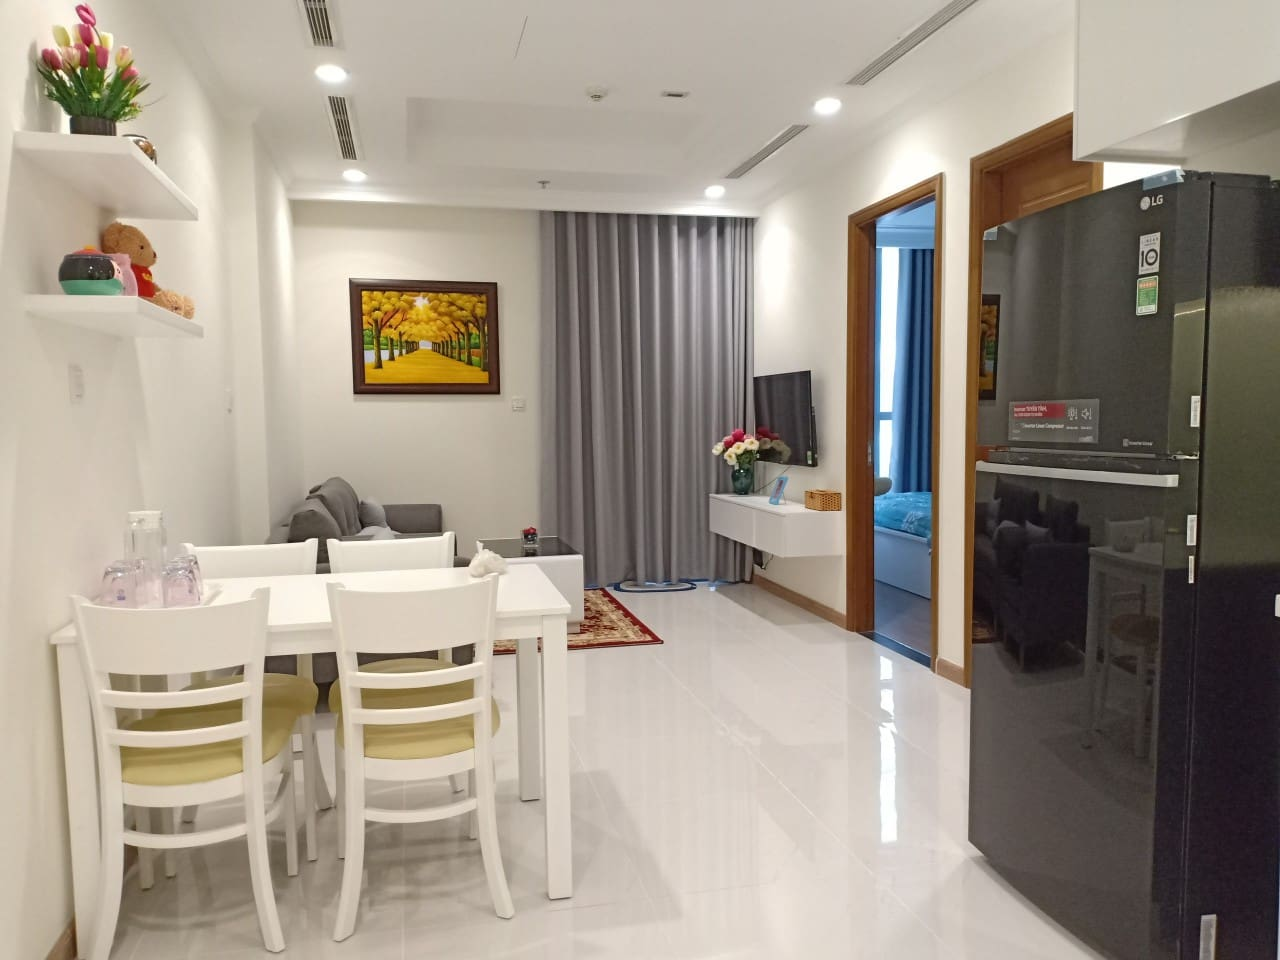 Dining area. Our kitchen is furnished with big fridge, cooking equipments and cutlery